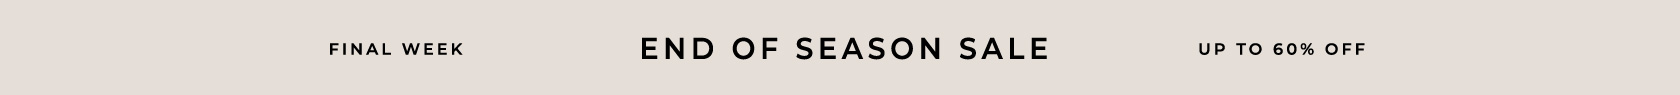 Up to 60% Off End of Season Sale